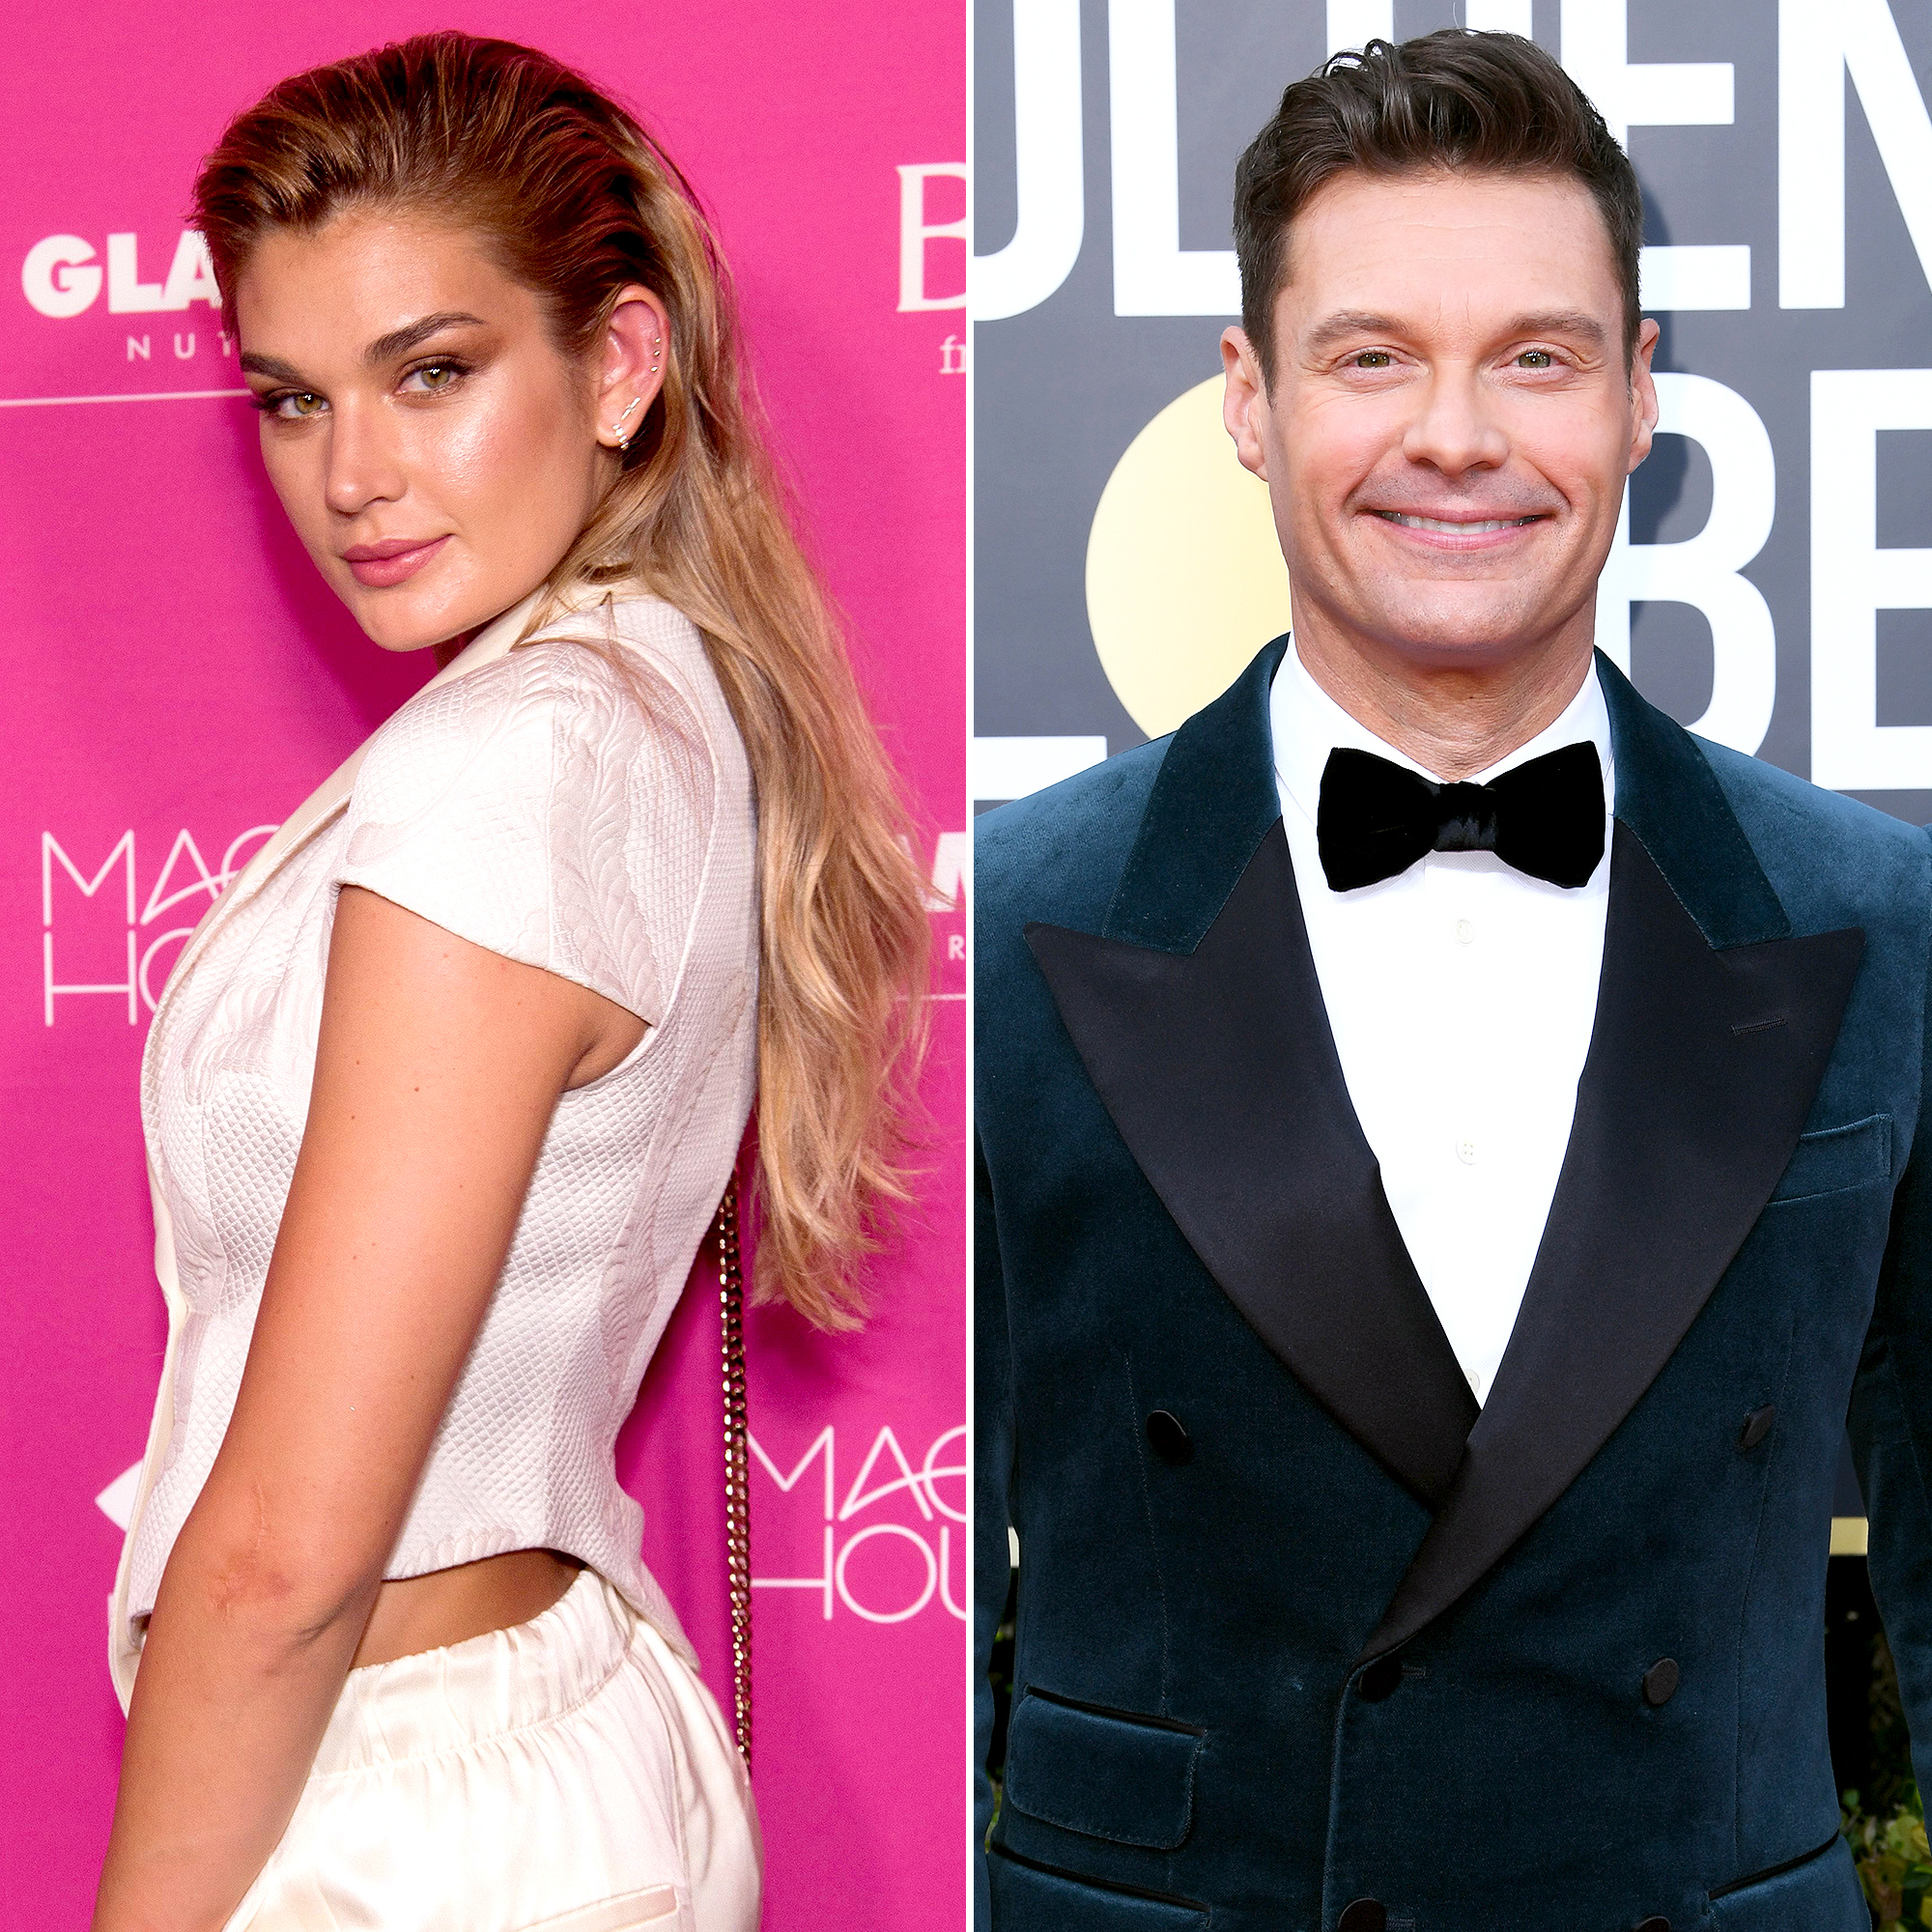 Shayna Taylor Shares Quote About Not Being Able to Change a Person After 3rd Ryan Seacrest Split